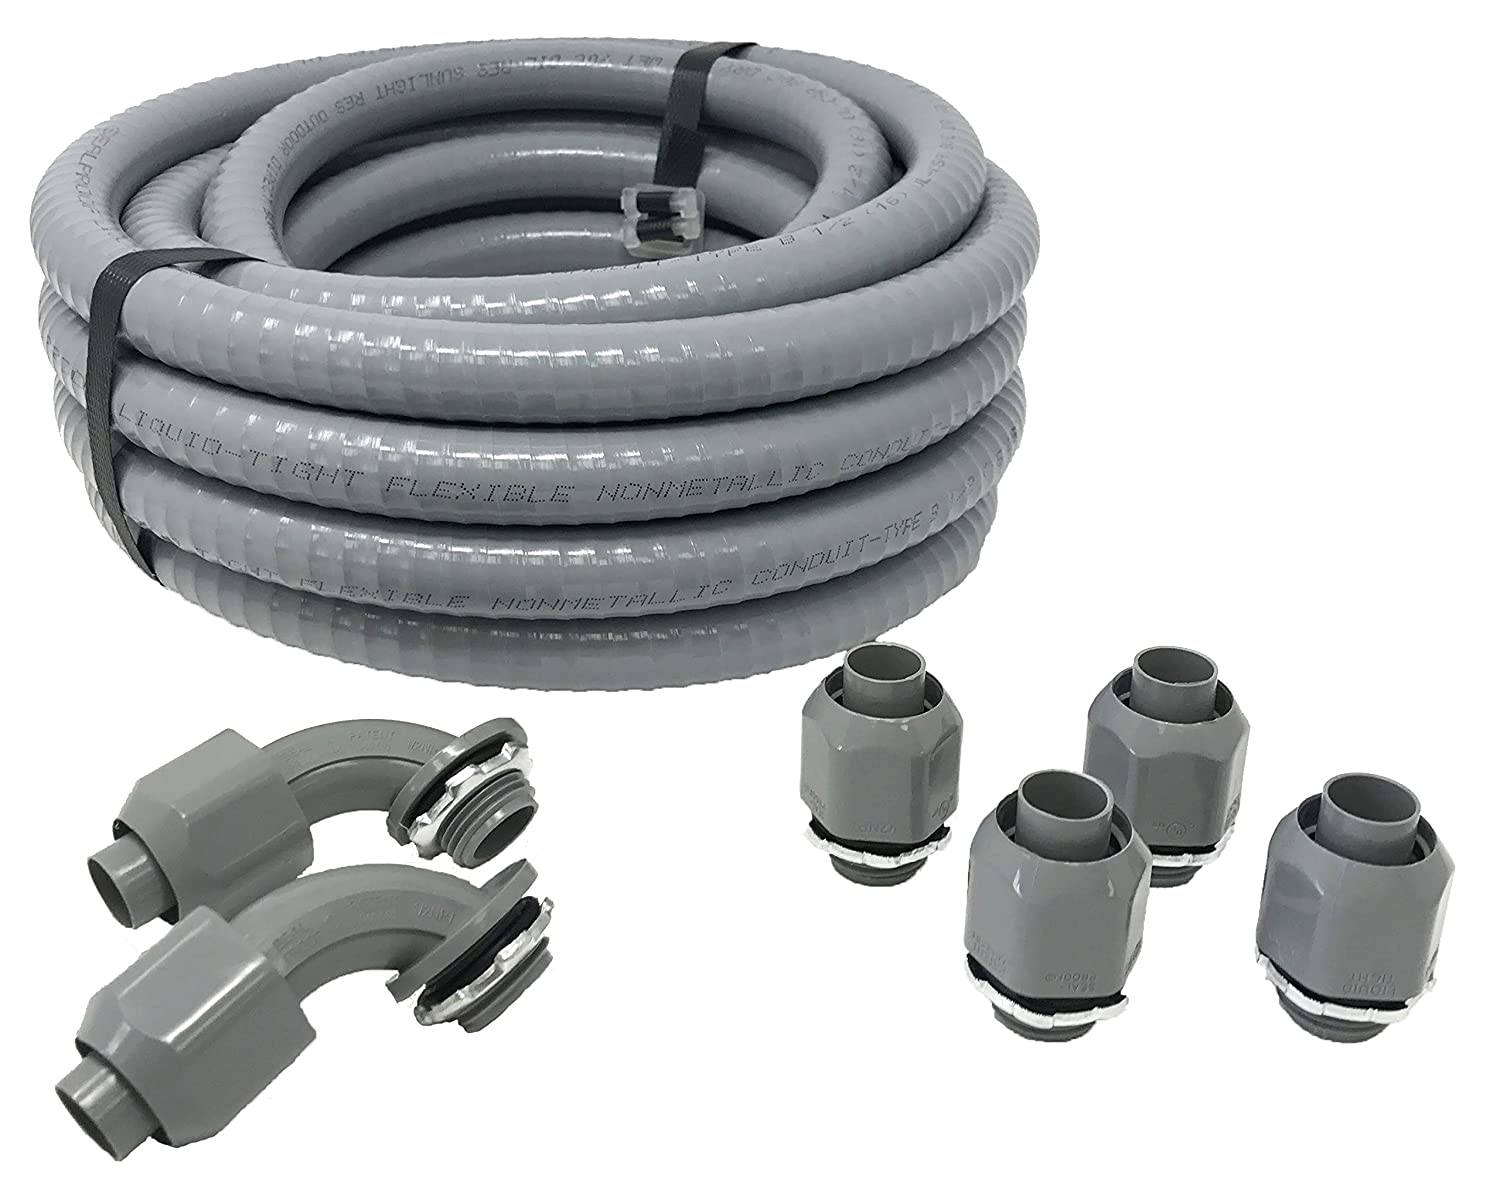 Electrical Conduit Fittings Home Wiring In Sealproof Non Metallic Liquid Tight And Connector Kit 1 2